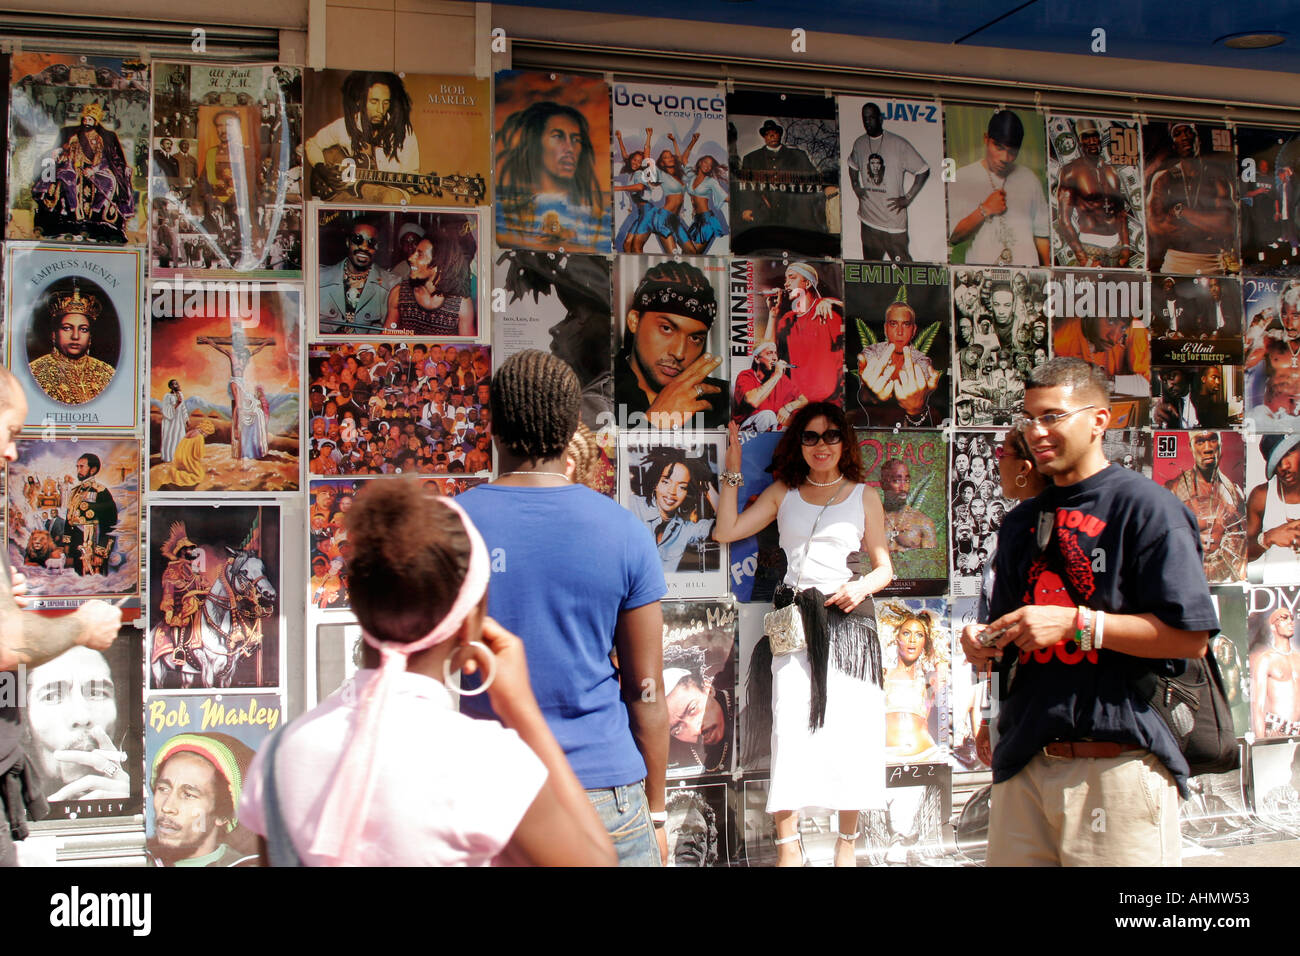 united kingdom london notting hill woman posing with passers by in front of billboards - Stock Image